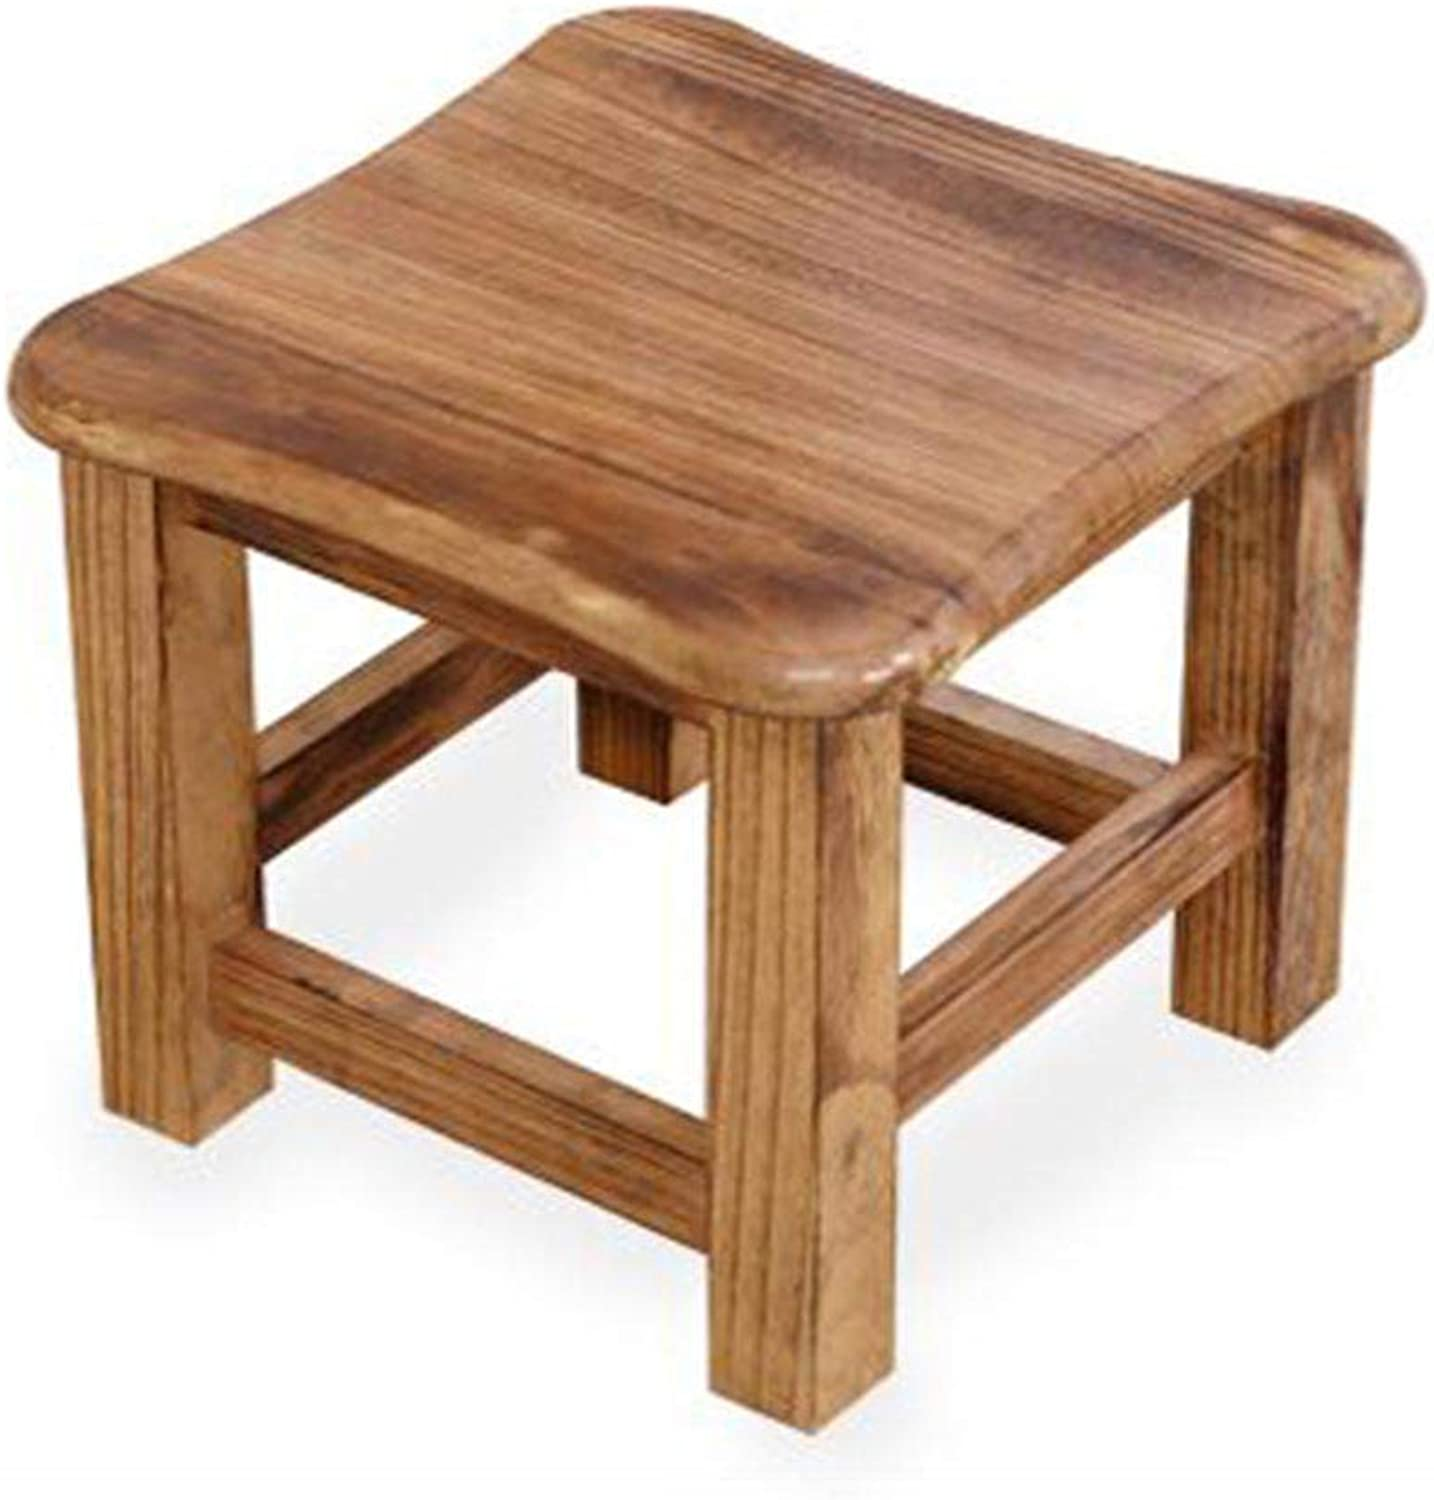 Stool Solid Wood Bench Creative Small Square Stool Change shoes Bench Household Coffee Table Stool GAOFENG (color   Paulownia Light color, Size   30  30  26cm)